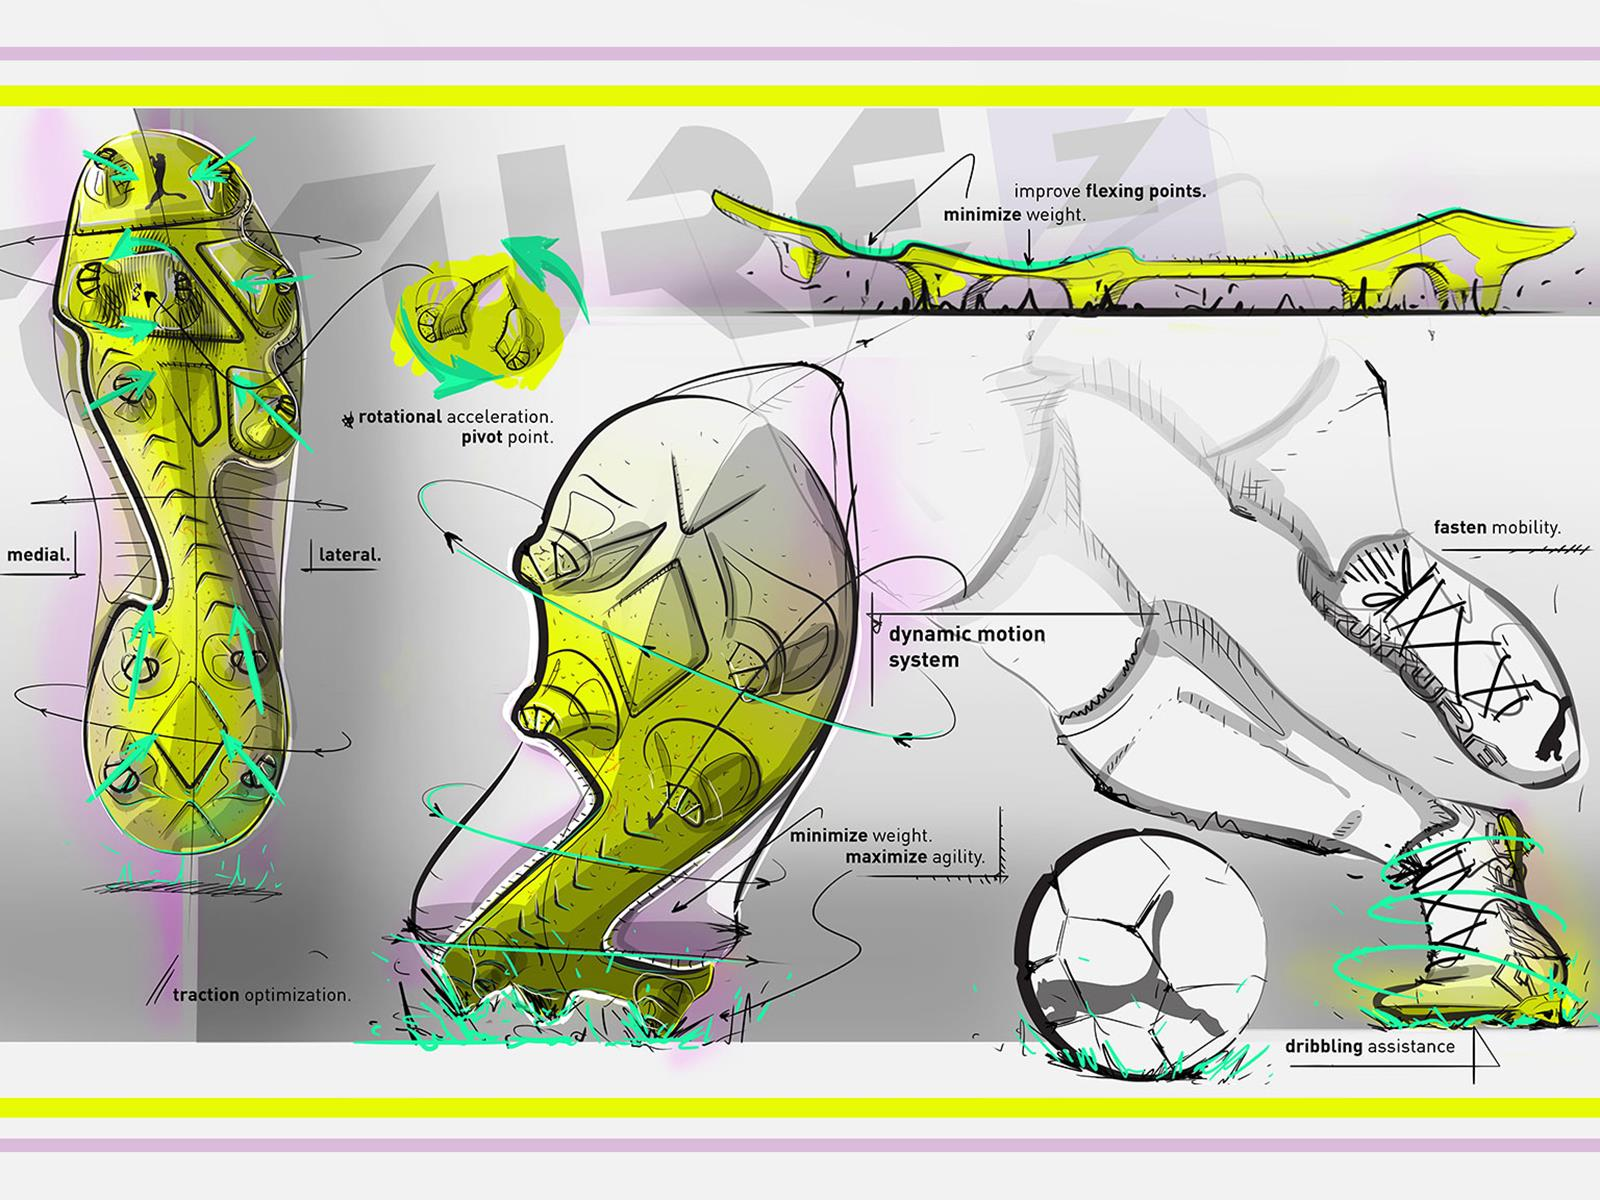 Designs of the latest boot coming from the retail giant